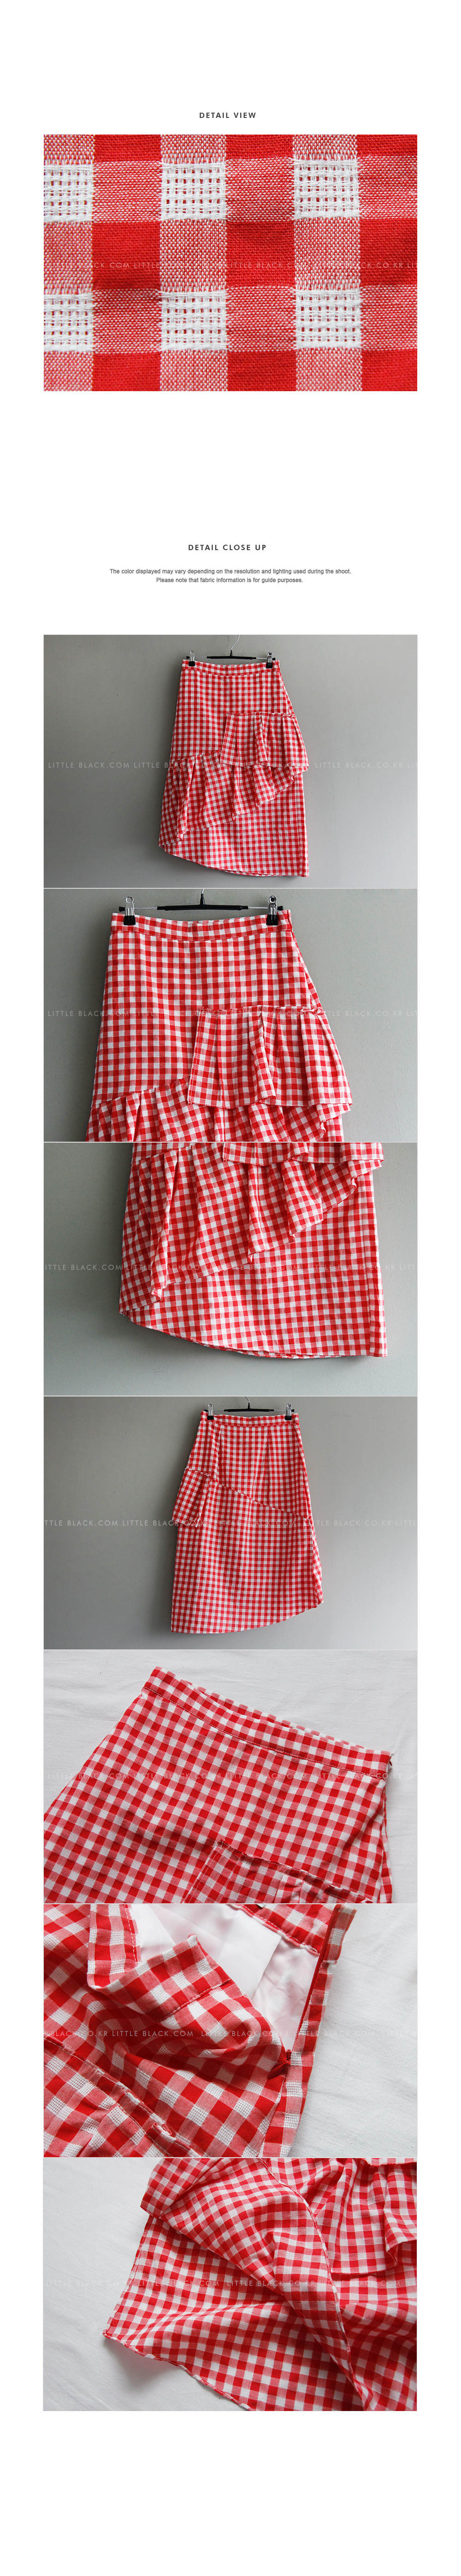 Ruffle Gingham Tiered Skirt|